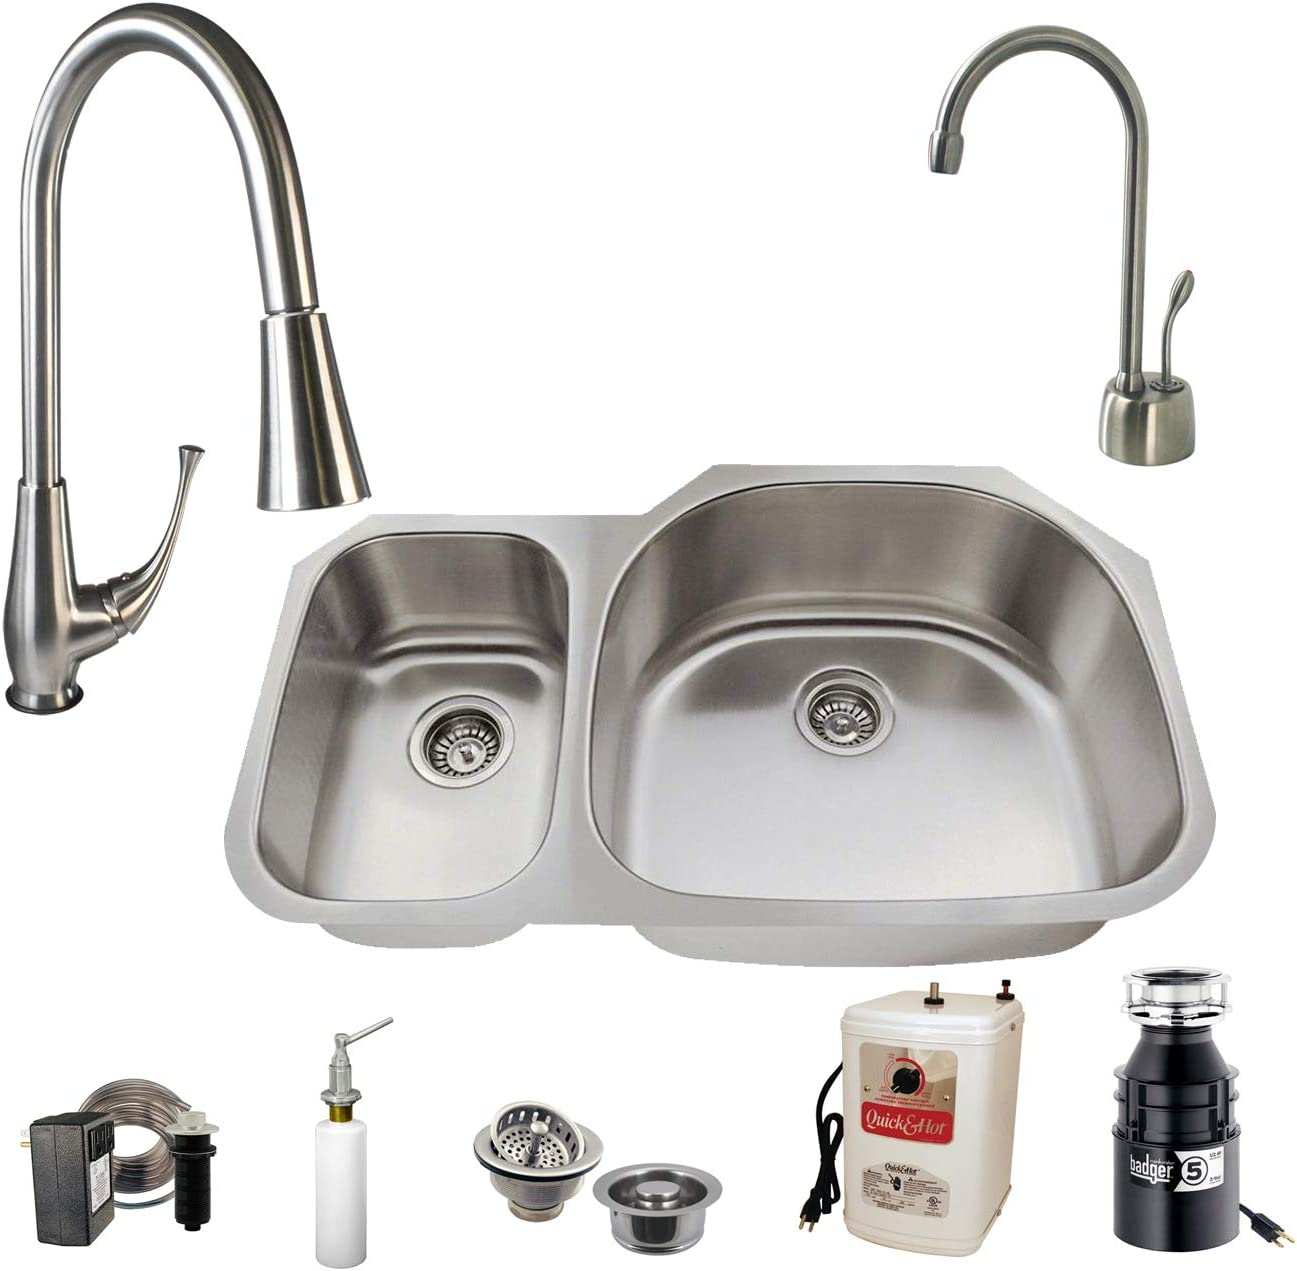 Westbrass U3148B71-07 All-in-One Undermount Stainless Steel 30 70 Double Bowl Kitchen Sink Set Includes Faucet, Badger 5 and Hot Water Dispenser 31.5 Stainless Steel